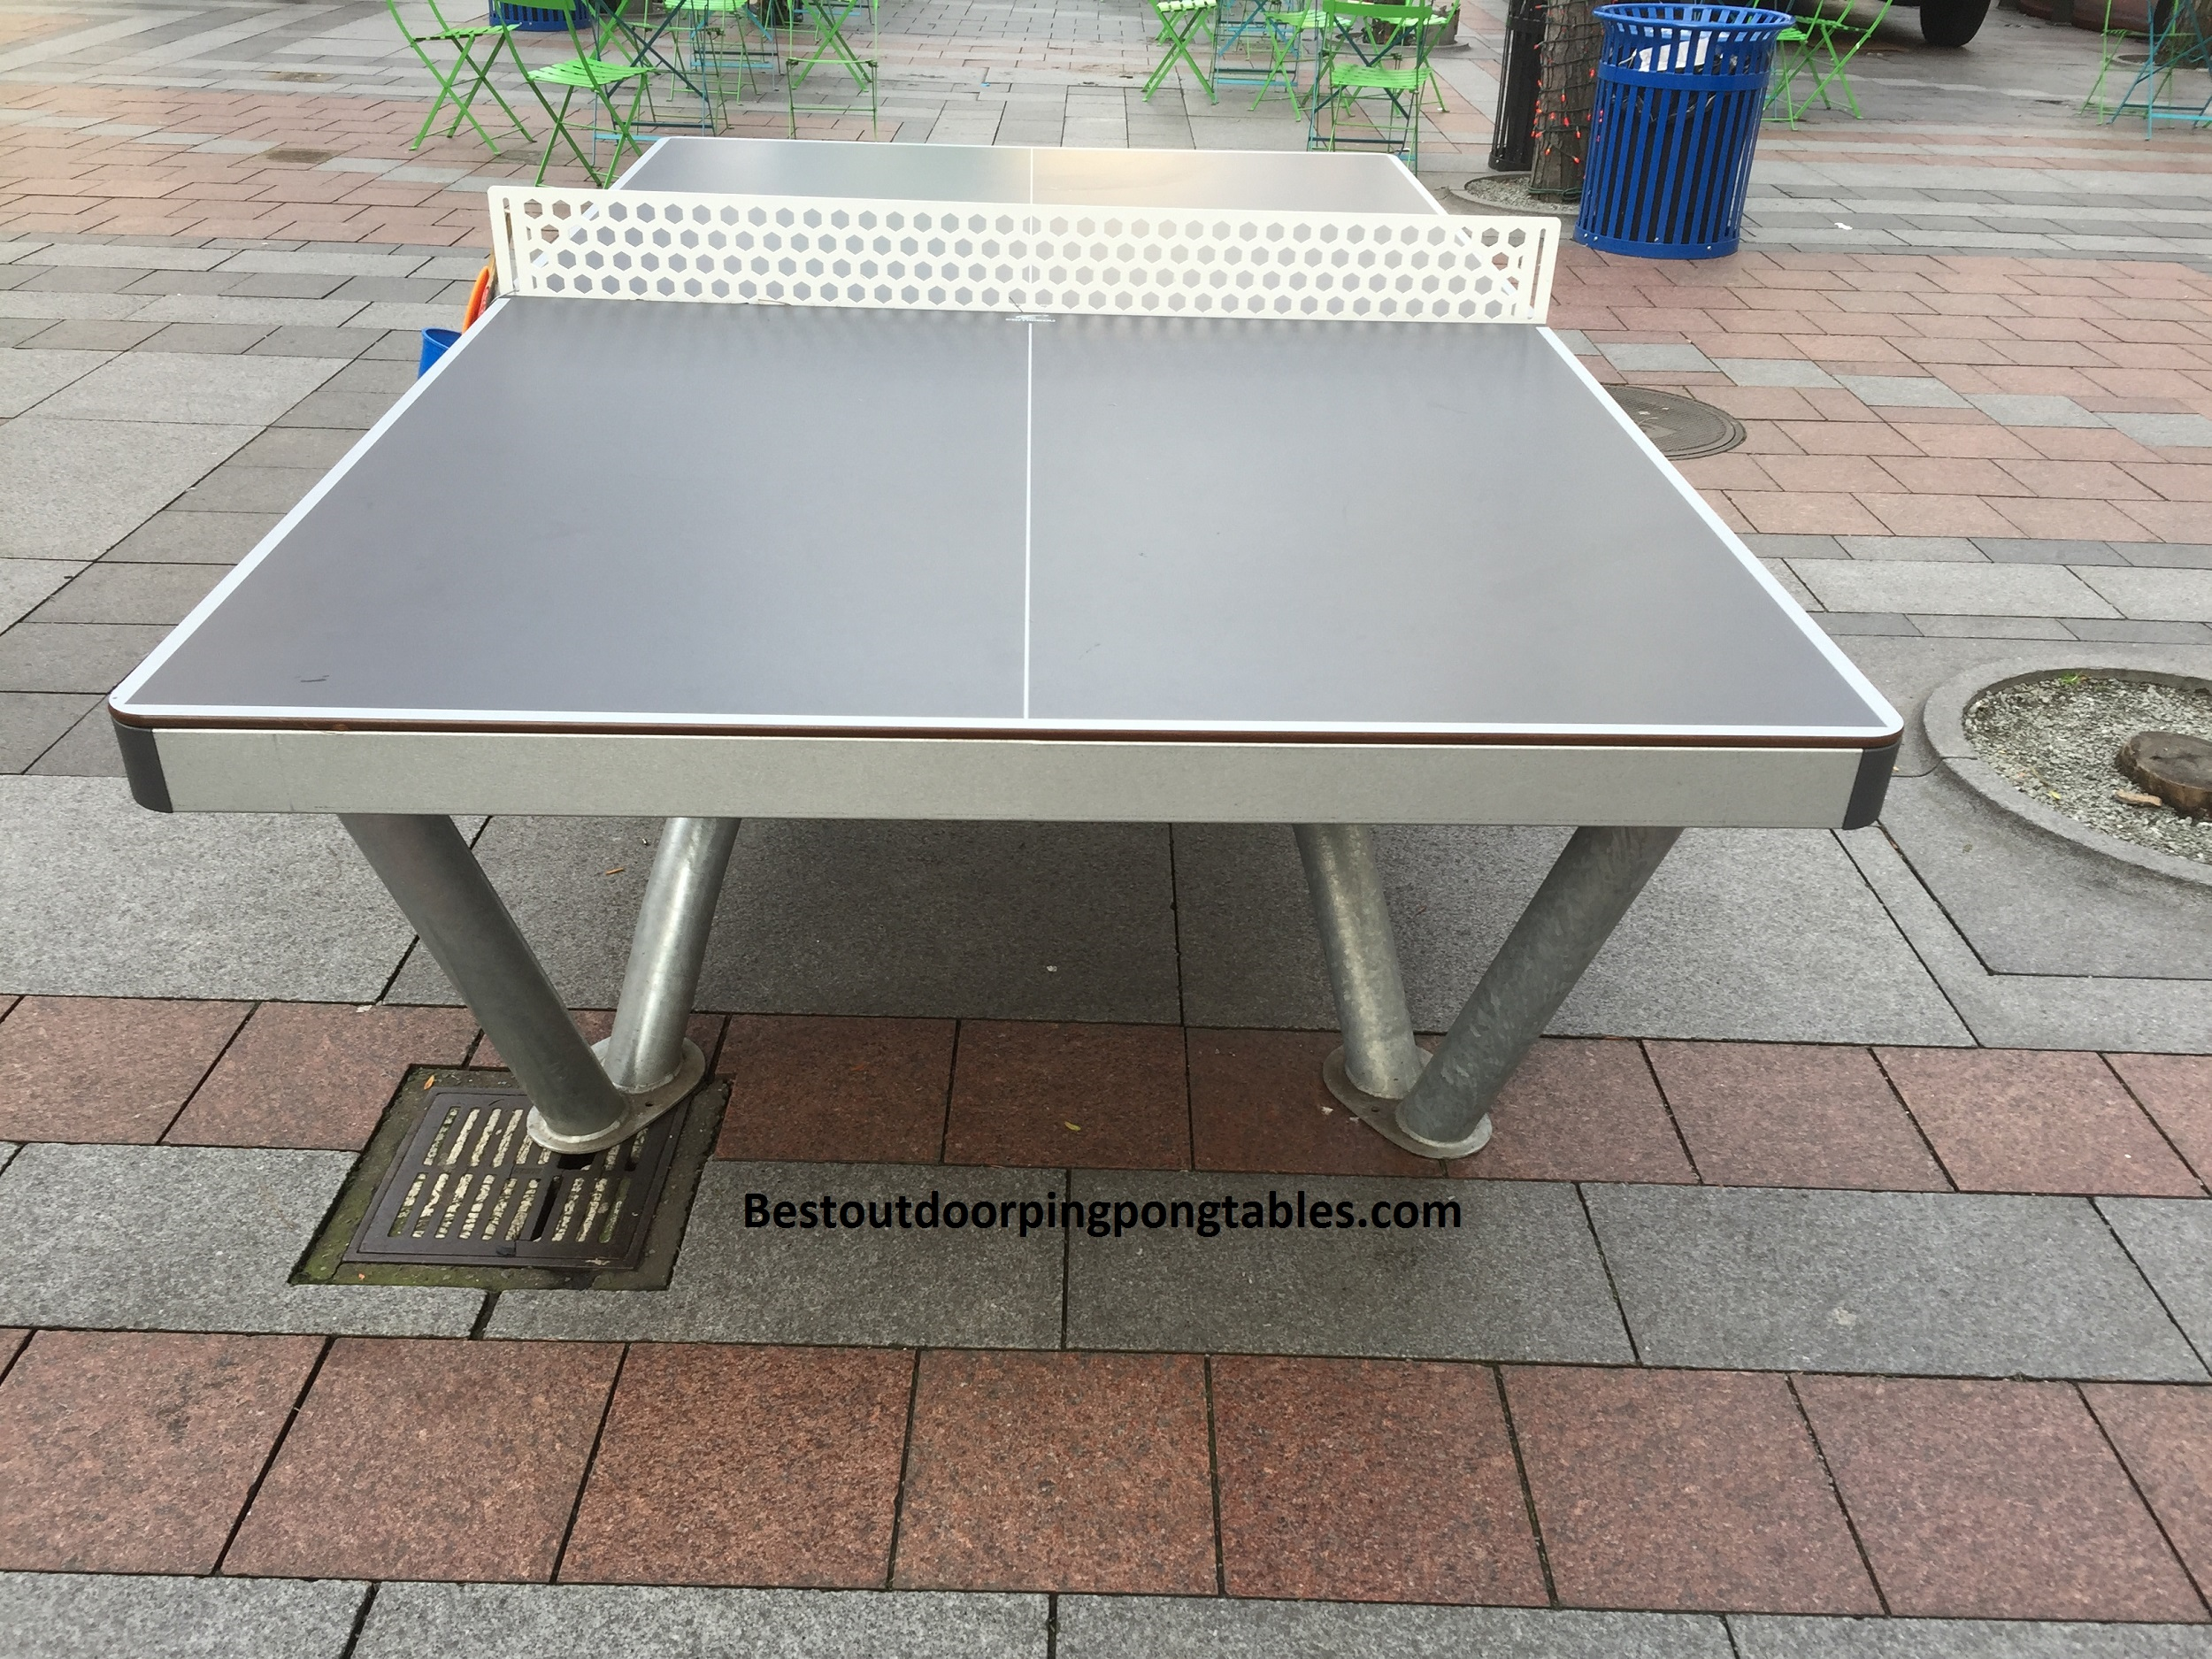 Seattle outdoor ping pong tables - Table ping pong kettler outdoor ...